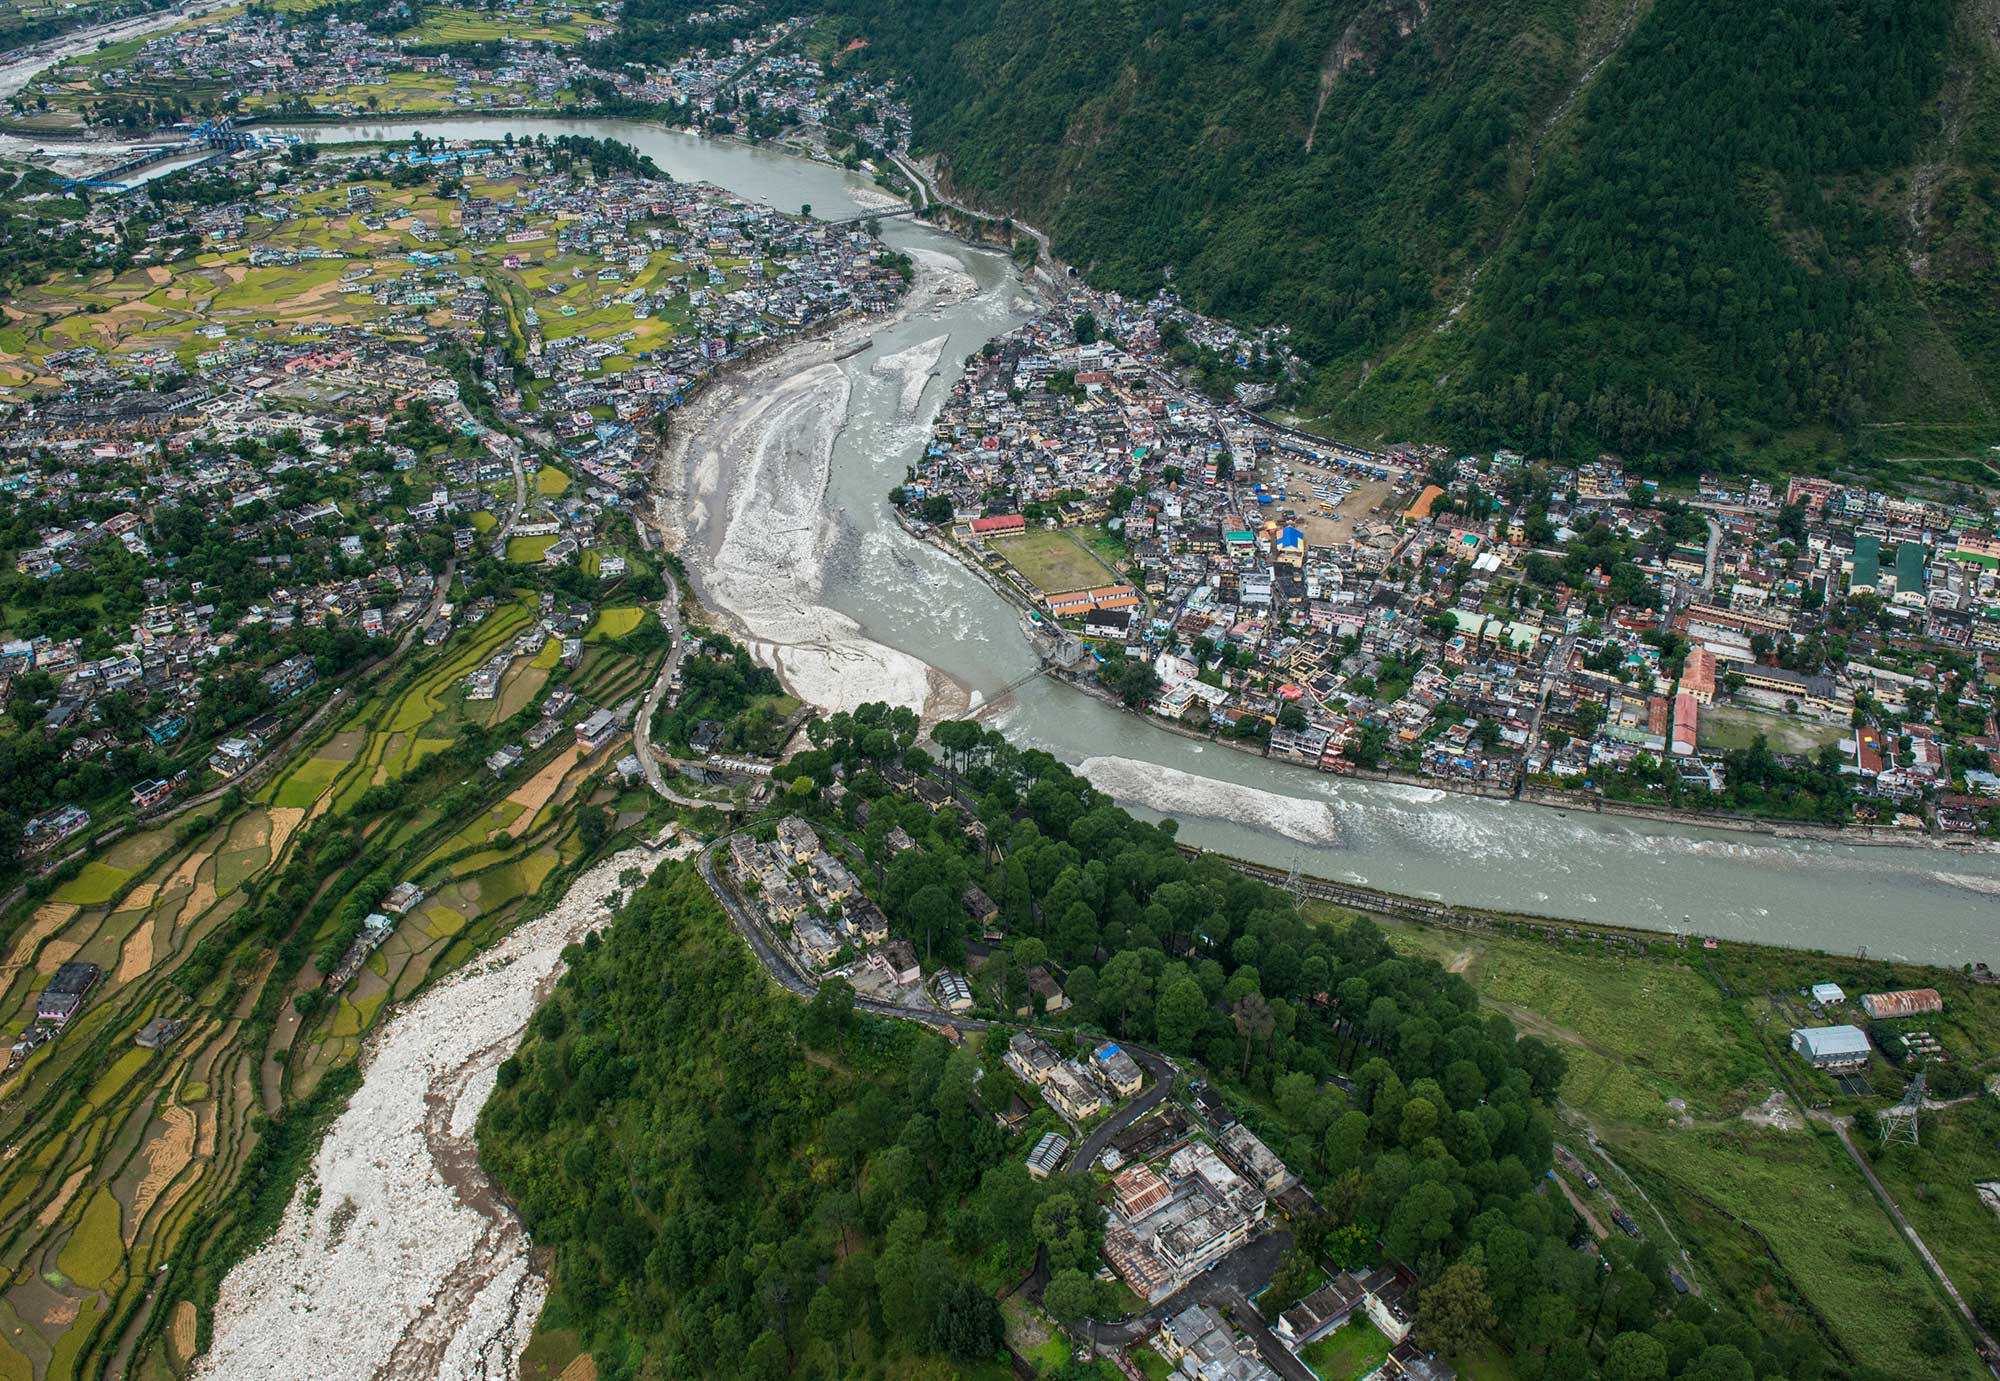 Aerial Image of the Ganges as it winds through the Uttarkashi region in the foothills of the Himalaya. In 2013, a record flood devastated this region, wiping roads and villages off the map, killing 6000 and leaving 30,000 stranded.